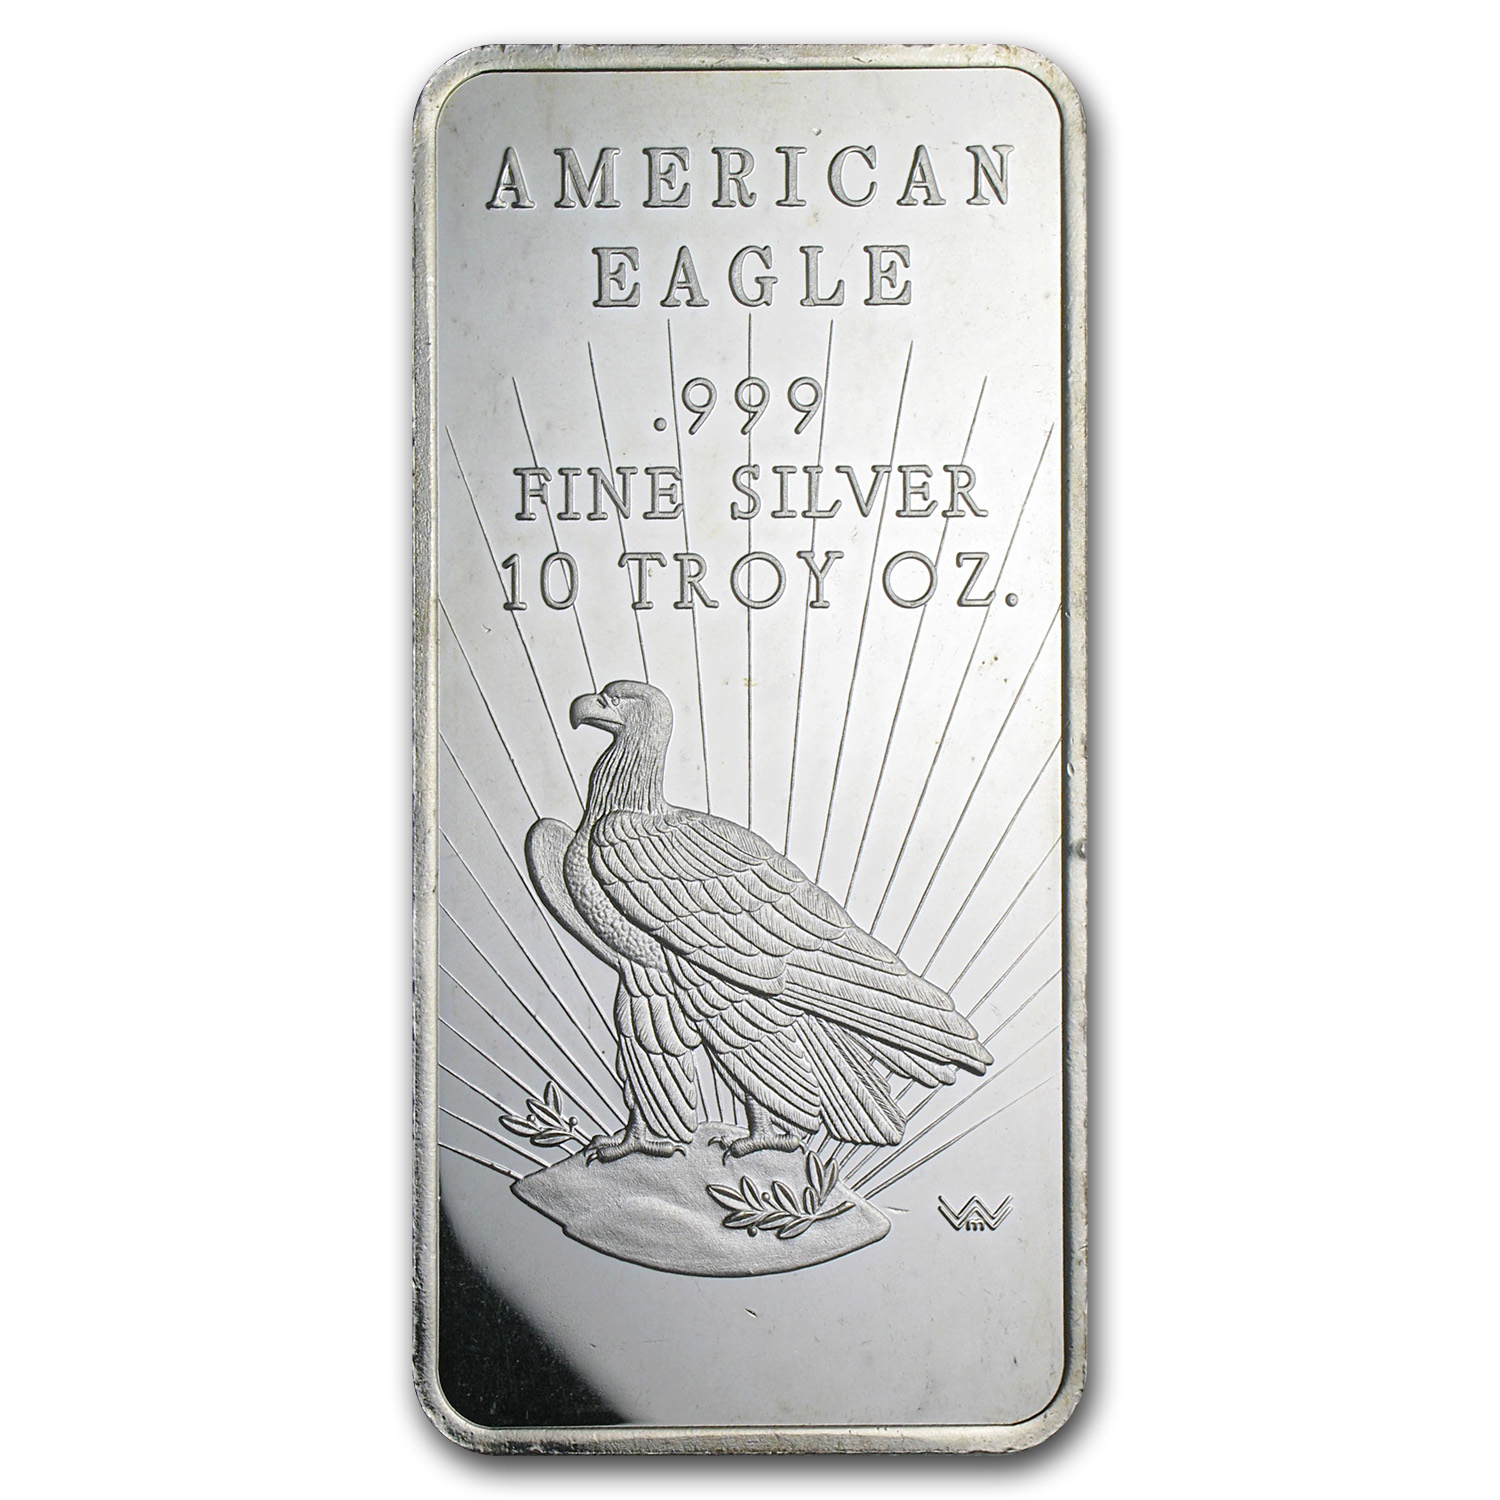 10 oz Silver Bar - World Wide Mint (Eagle)